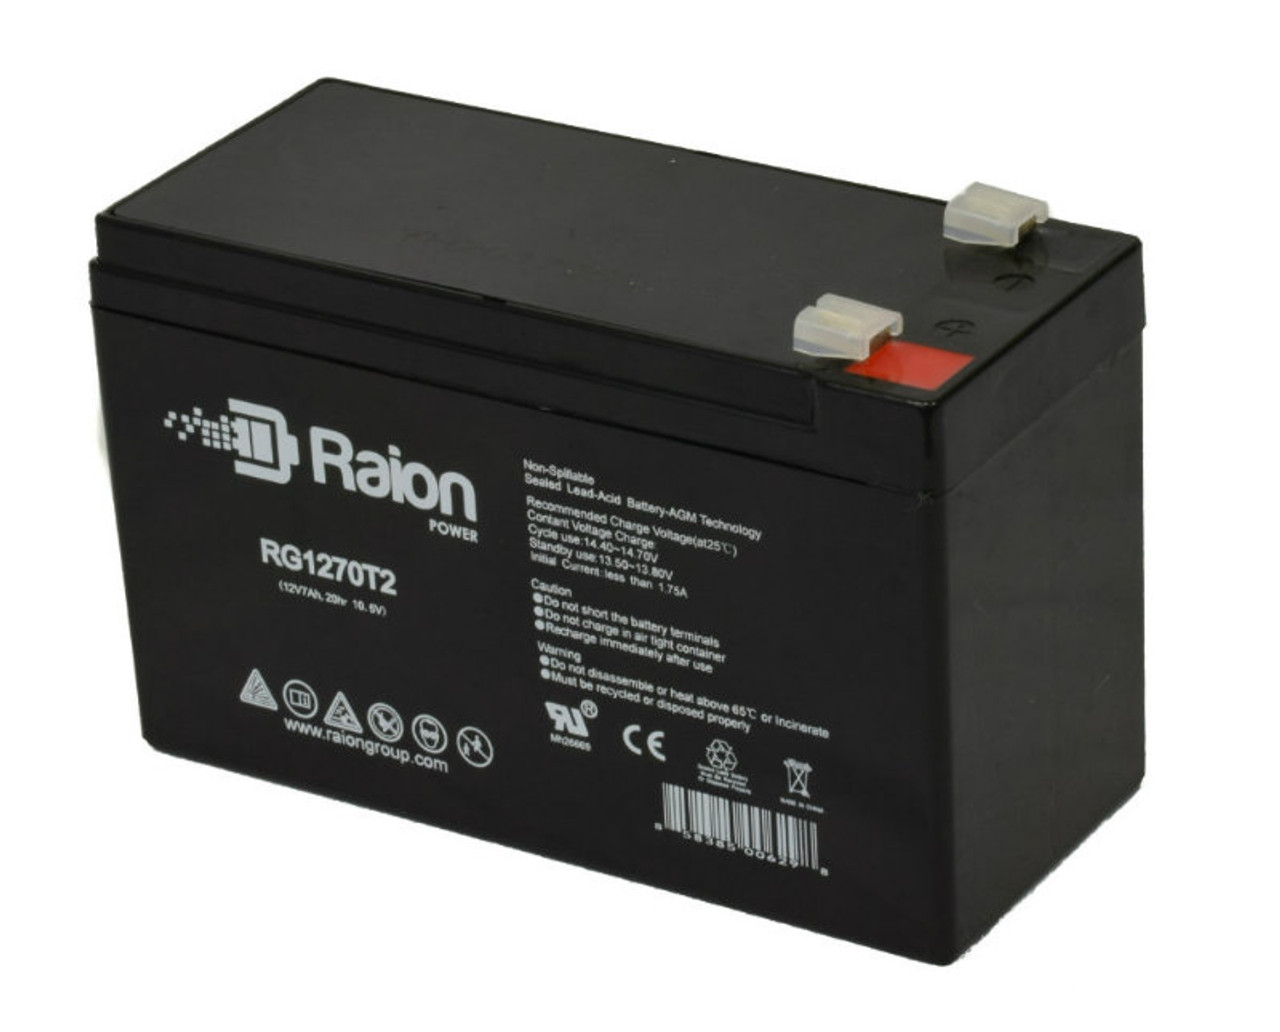 Raion Power RG1270T1 Replacement Battery for Long Way LW-6FM7.2J